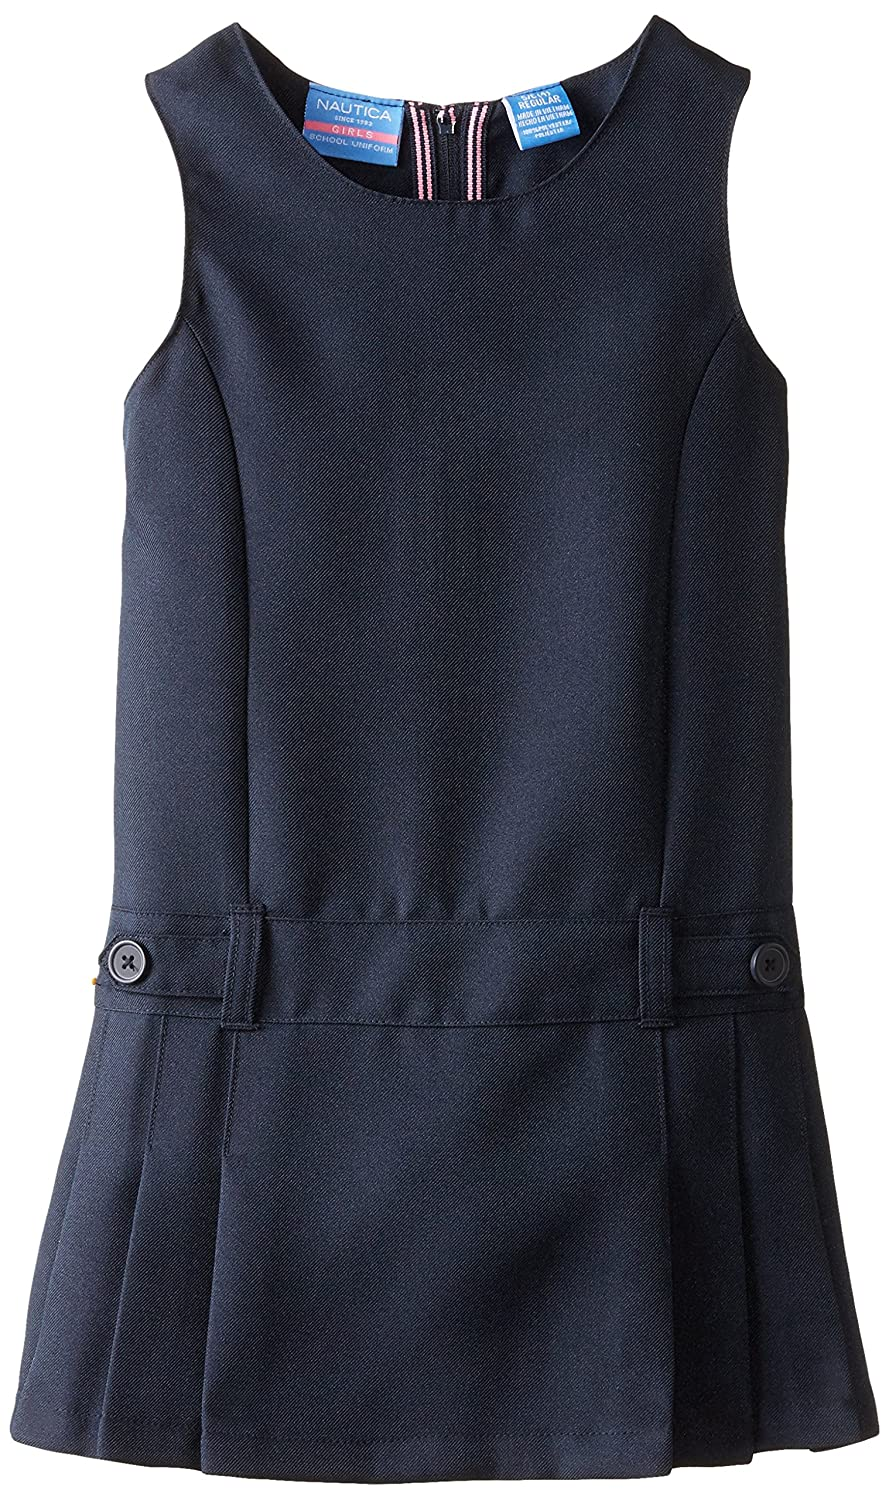 Nautica girls Poly Jumper with Waist Tabs (Little Kids) Nautica Girls 2-6x NCG0230P-414